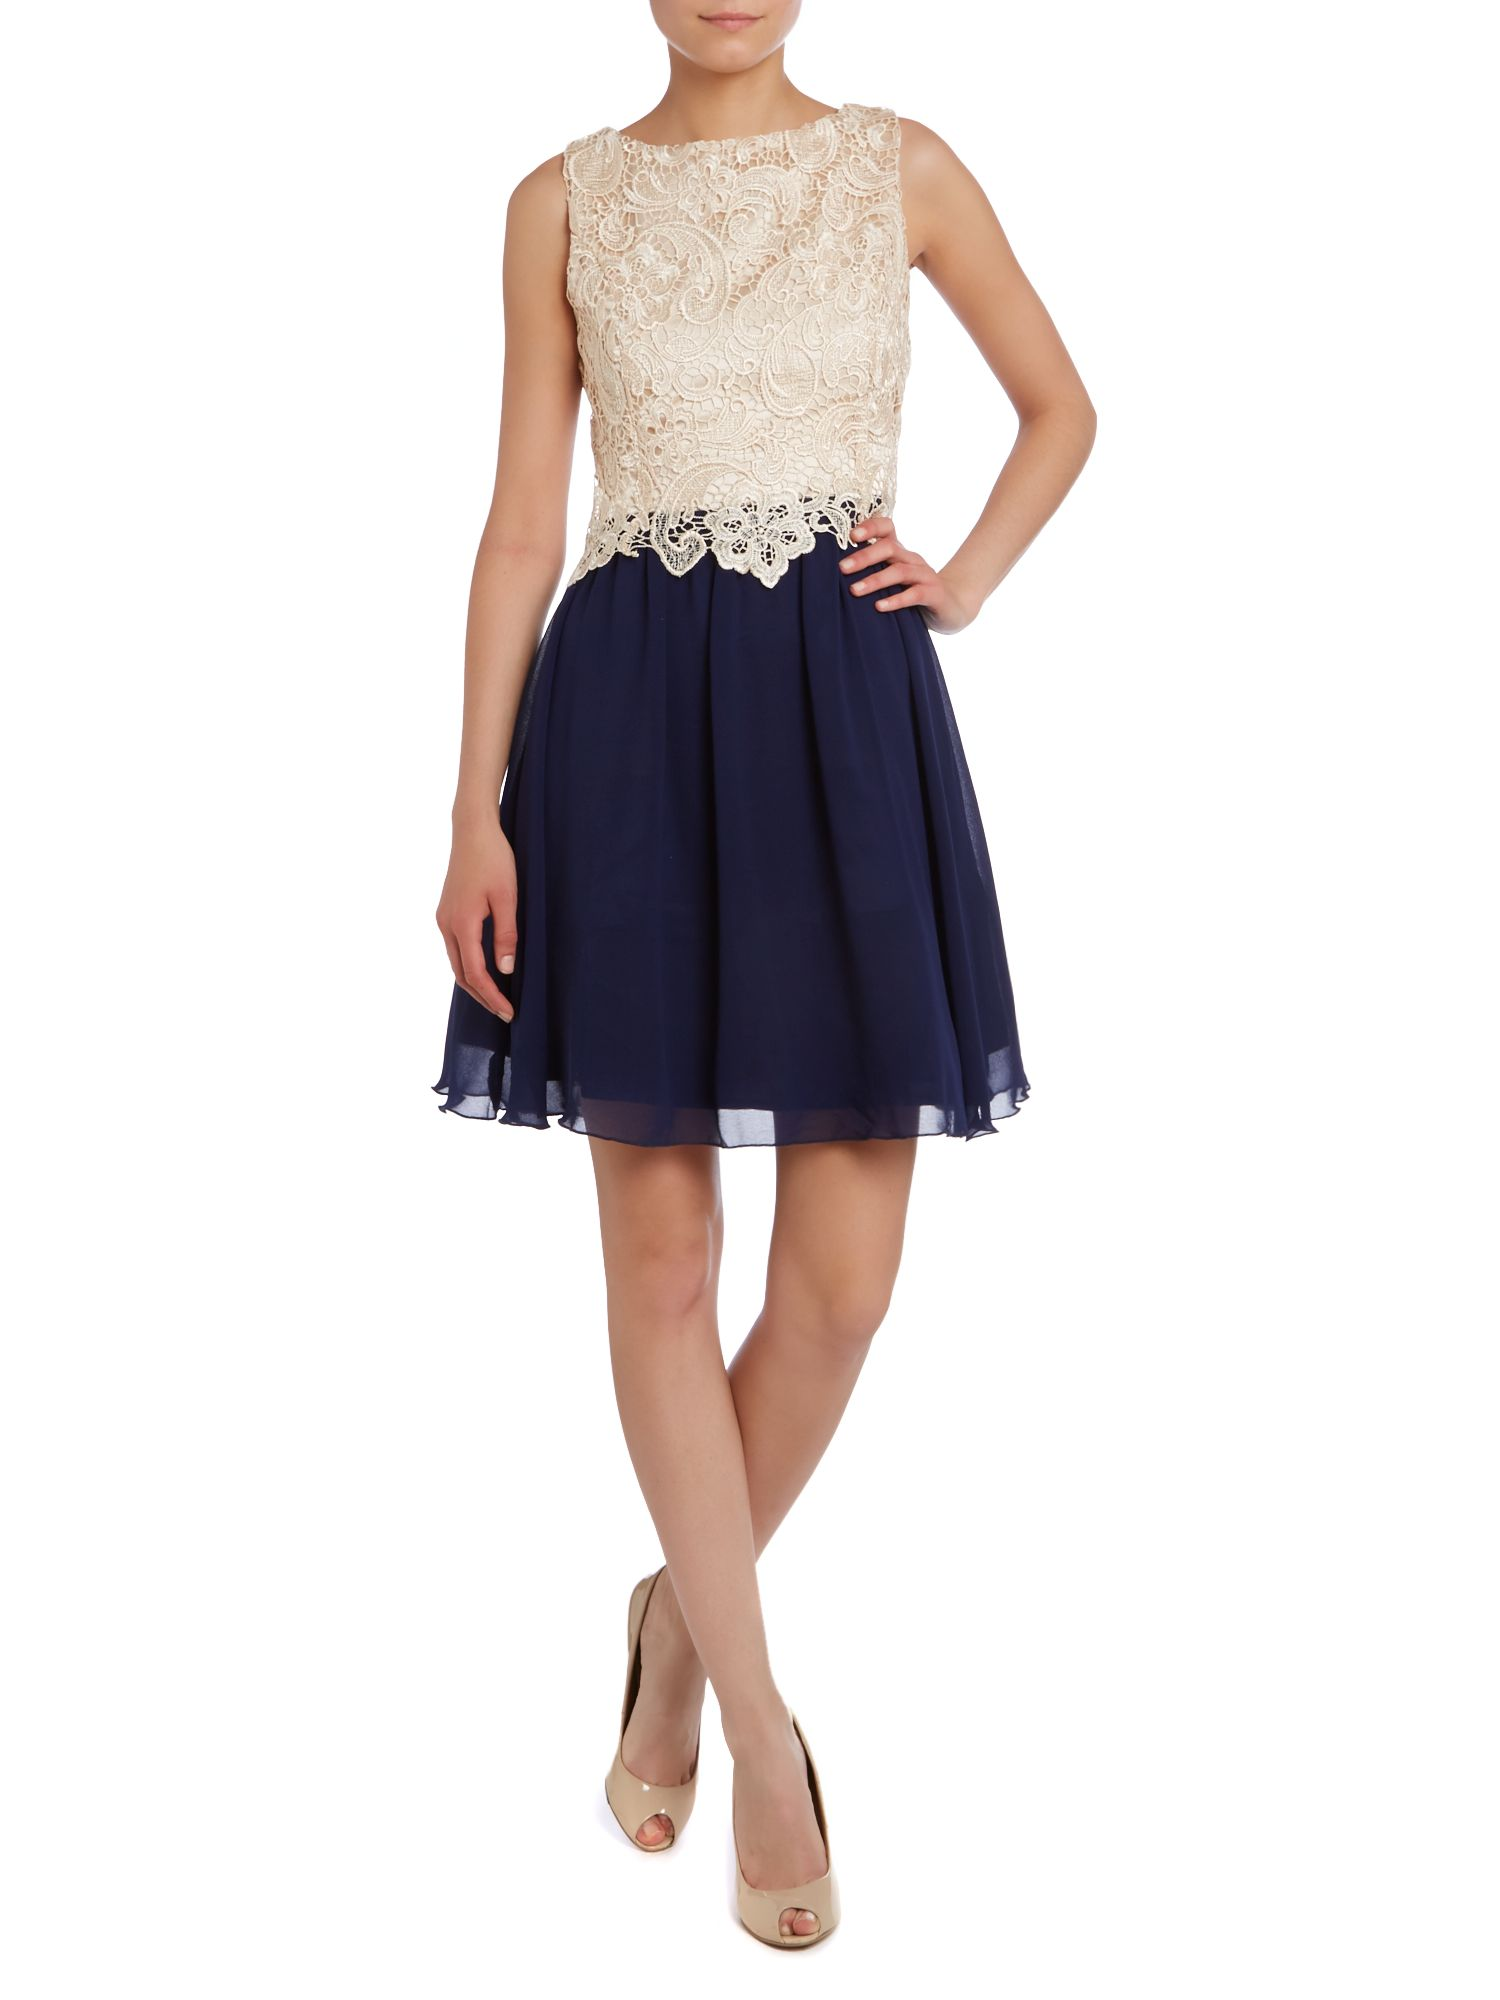 SL LACE TOP FIT AND FLARE DRESS